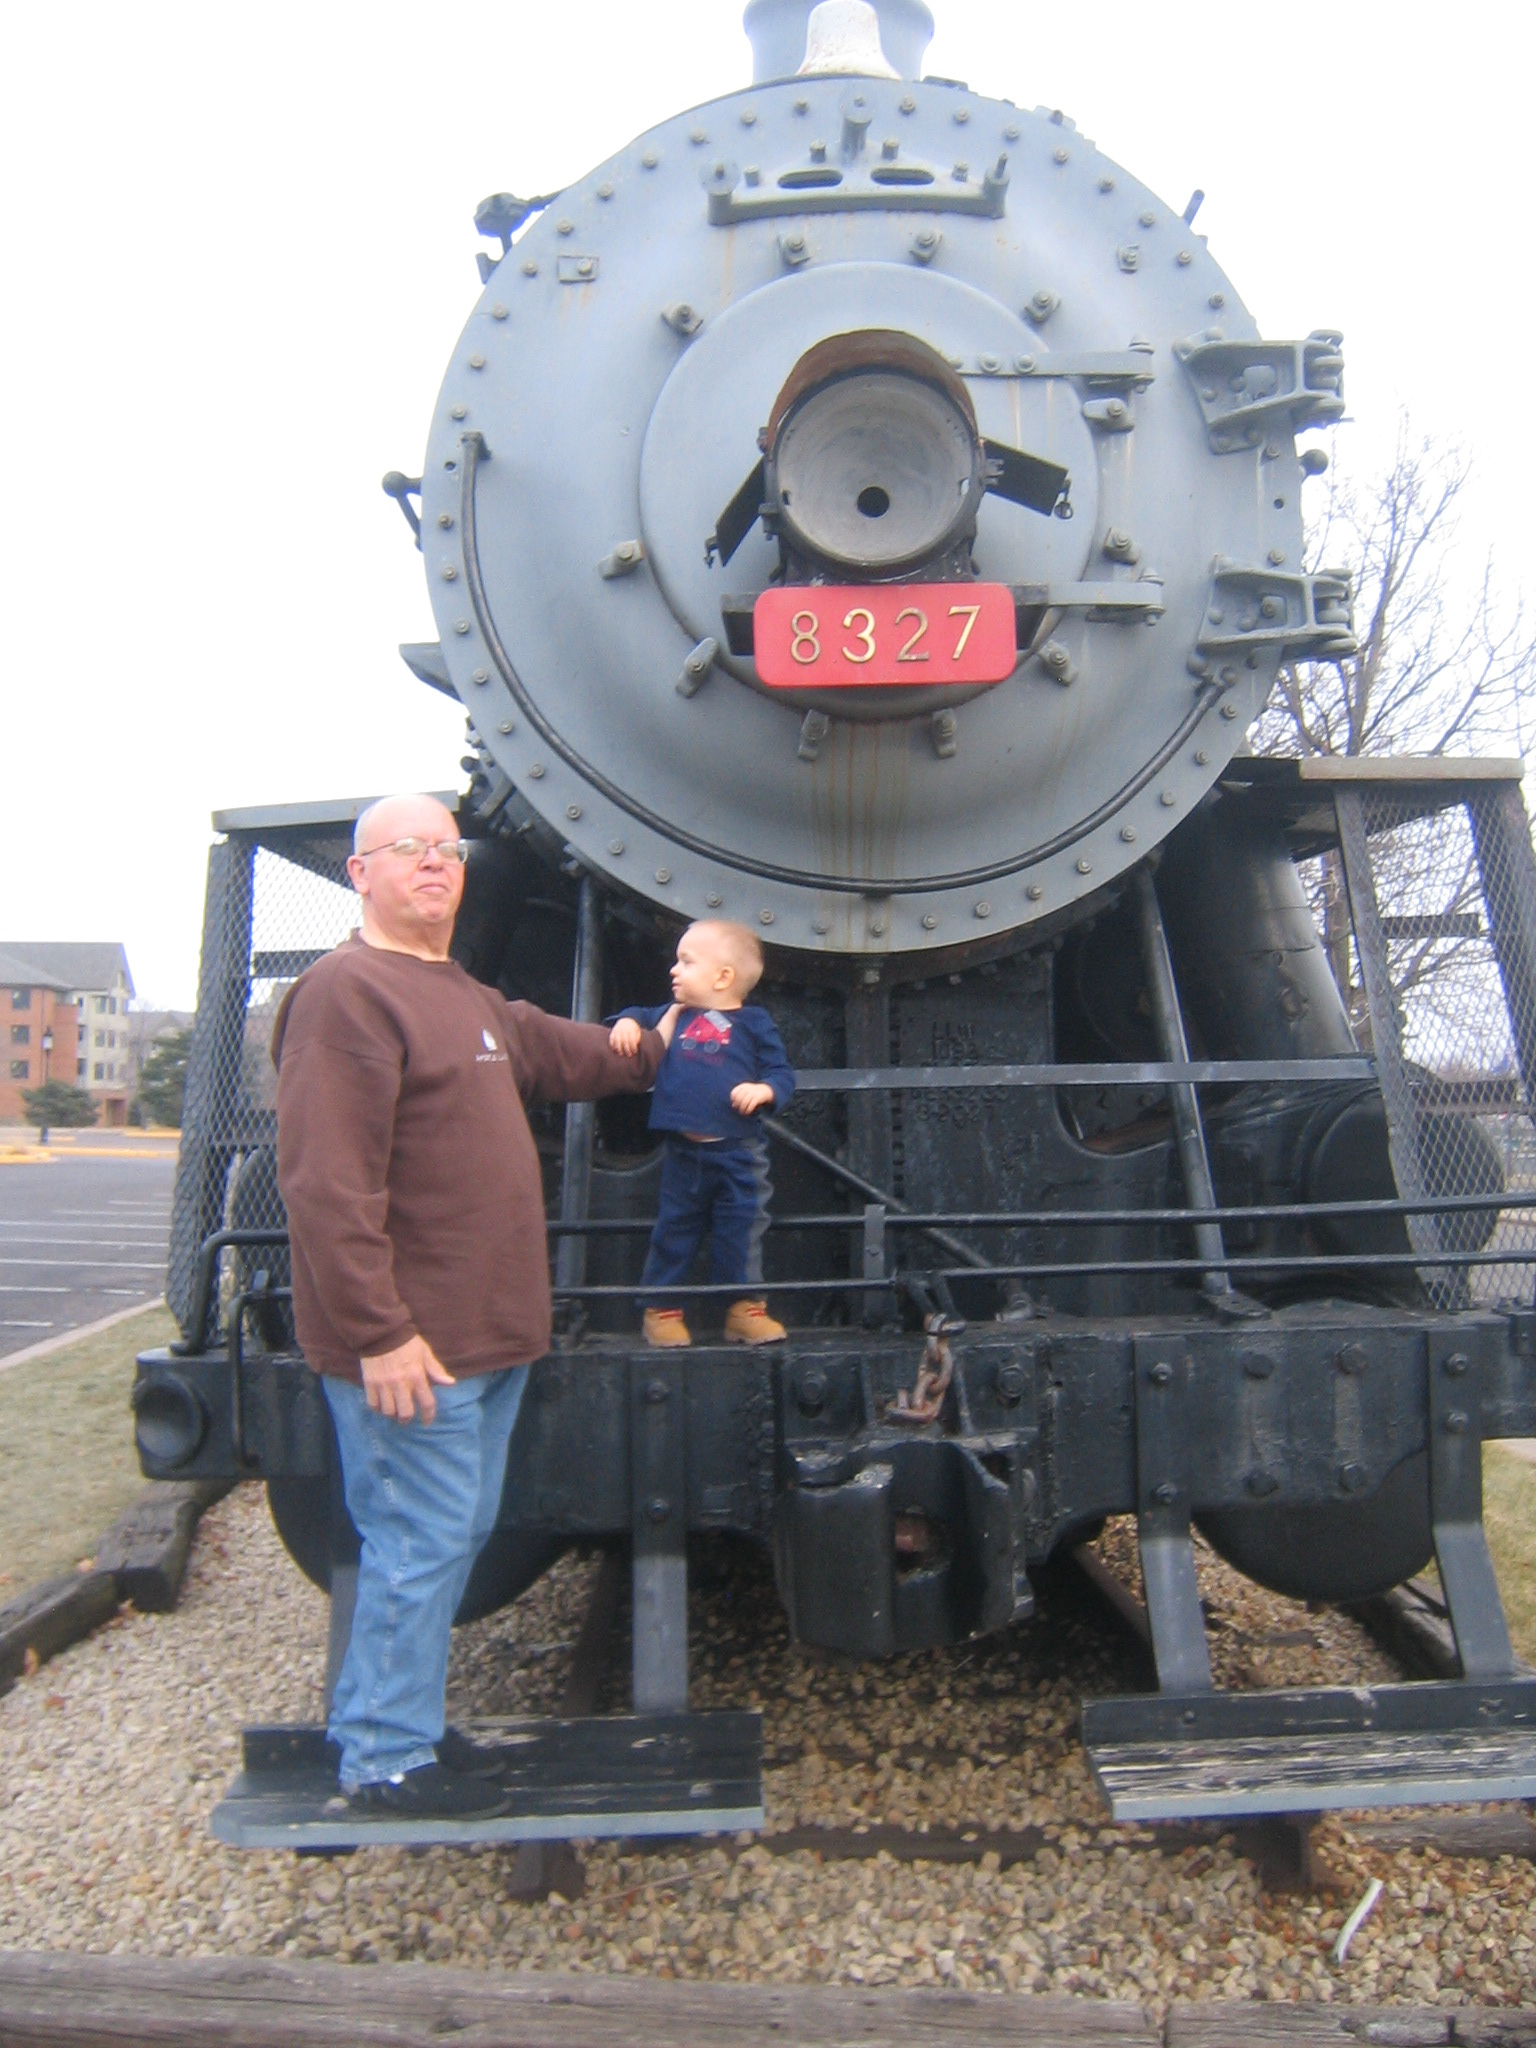 And grandpa forever thomas the tank engine photo 34306940 fanpop